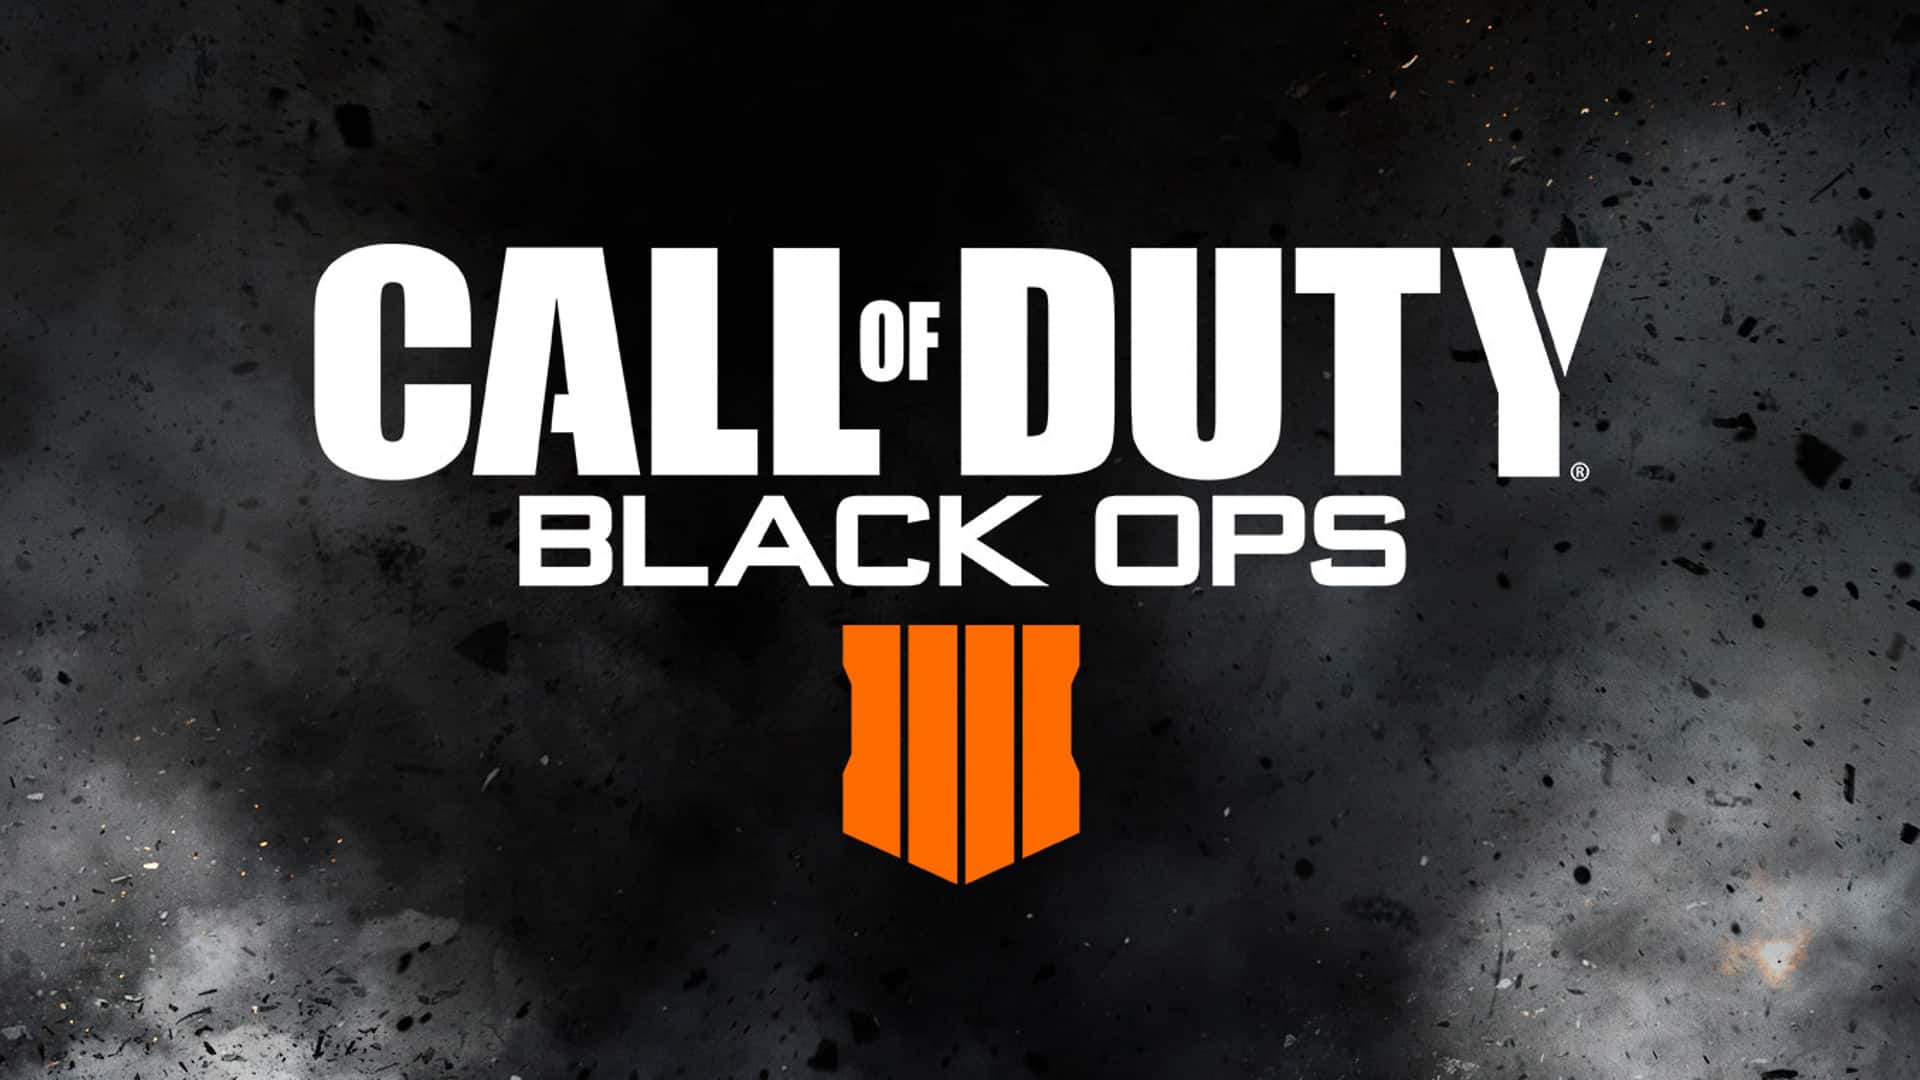 An official announcement of Call of Duty: Black Ops 4